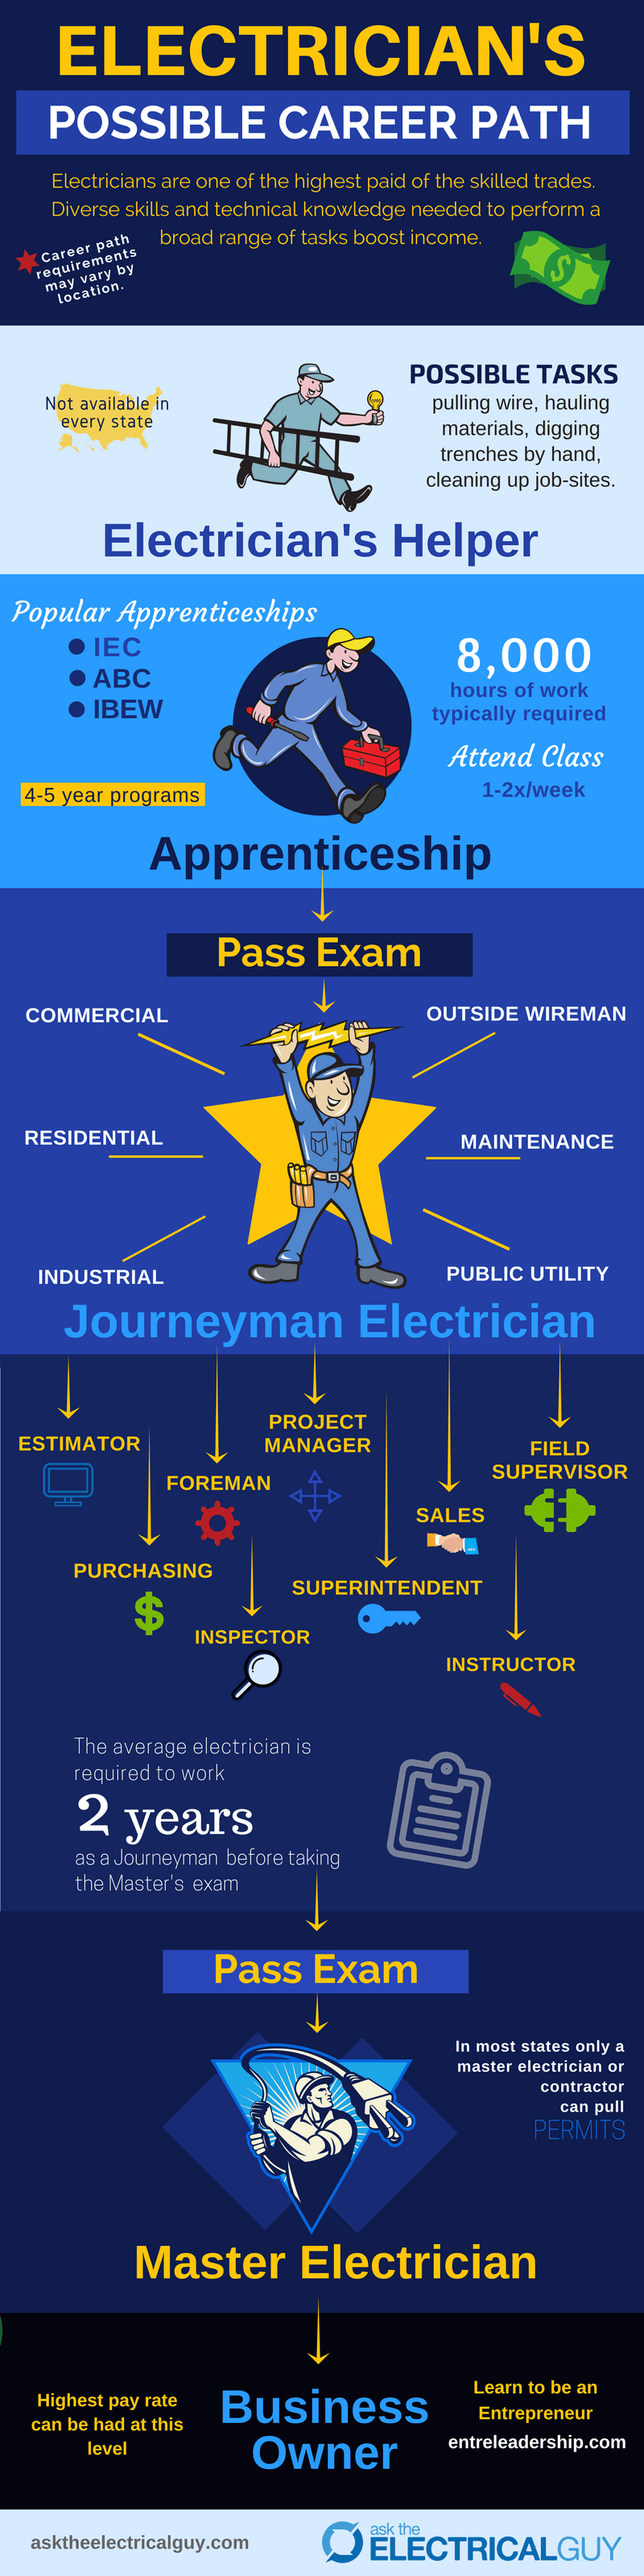 Electricians Career Paths